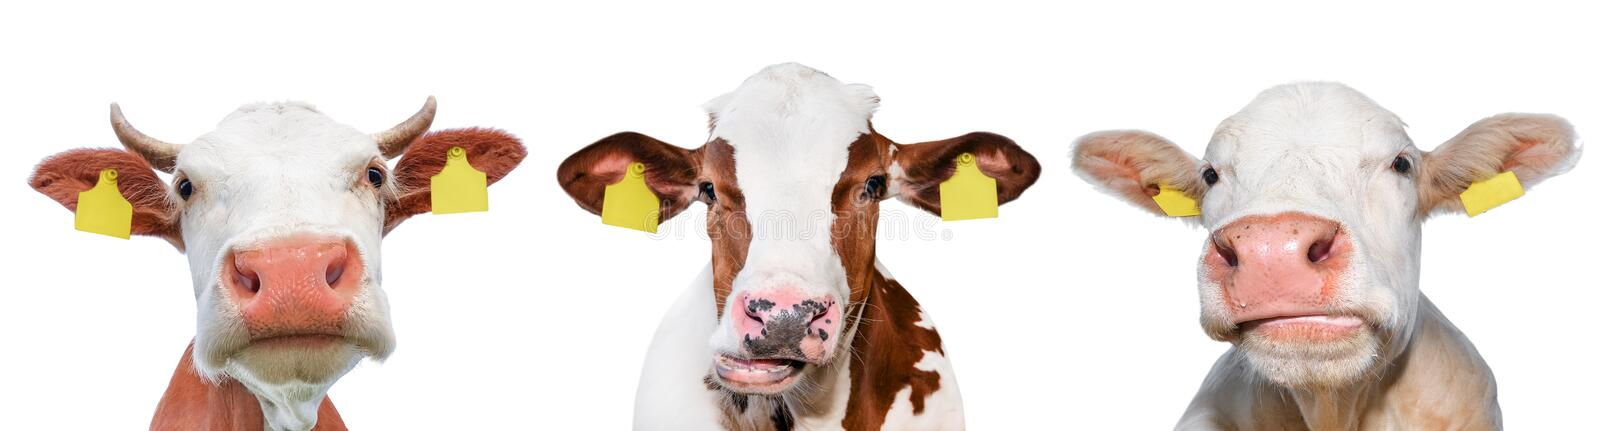 Three funny cow spotted isolated on a white background. Portrait of three cute cows. Farm animals stock photo